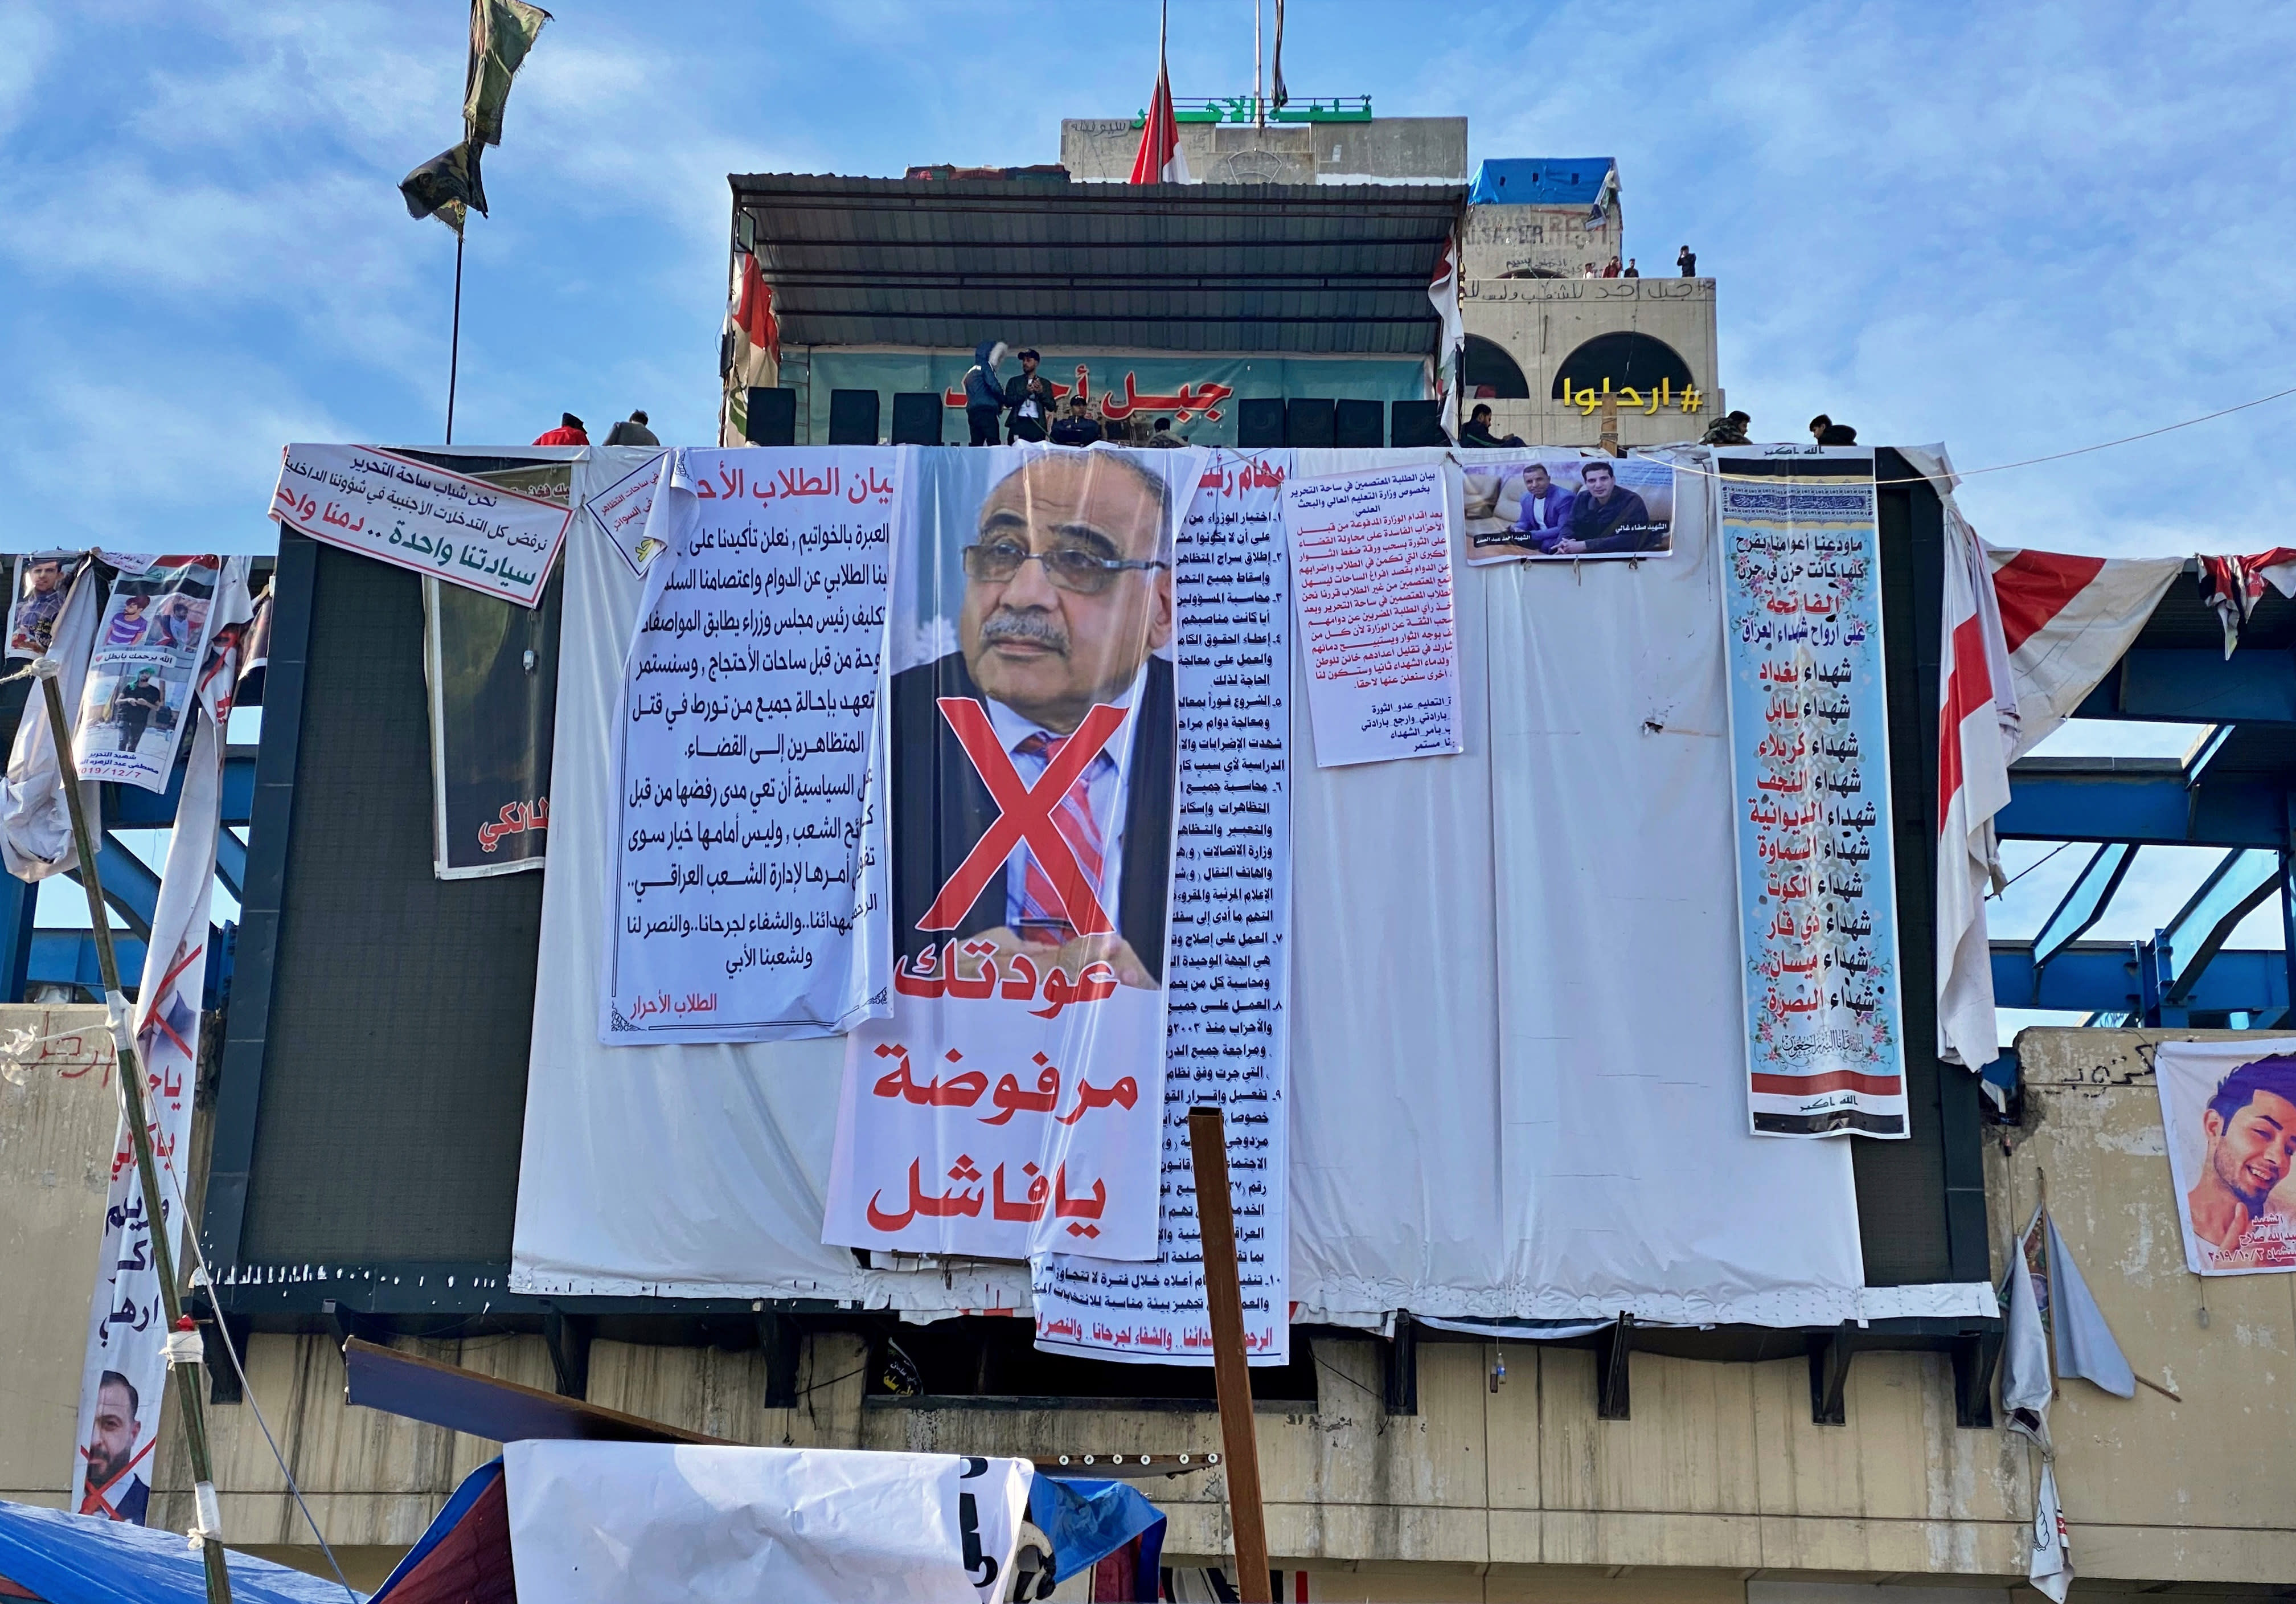 """In this Monday, Jan. 13, 2020 photo, a poster with a defaced picture of Iraqi acting Prime Minister Adil Abdul-Mahdi, and Arabic that reads, """"Your return is rejected, loser,"""" hangs in Tahrir Square, in Baghdad, Iraq. Mass protests by young Iraqis against their country's ruling elite helped force the resignation of the prime minister, but with the focus now turning to the conflict between the United States and Iran, demonstrators fear the momentum is being drawn away from their goals. (AP Photo/Khalid Mohammed)"""